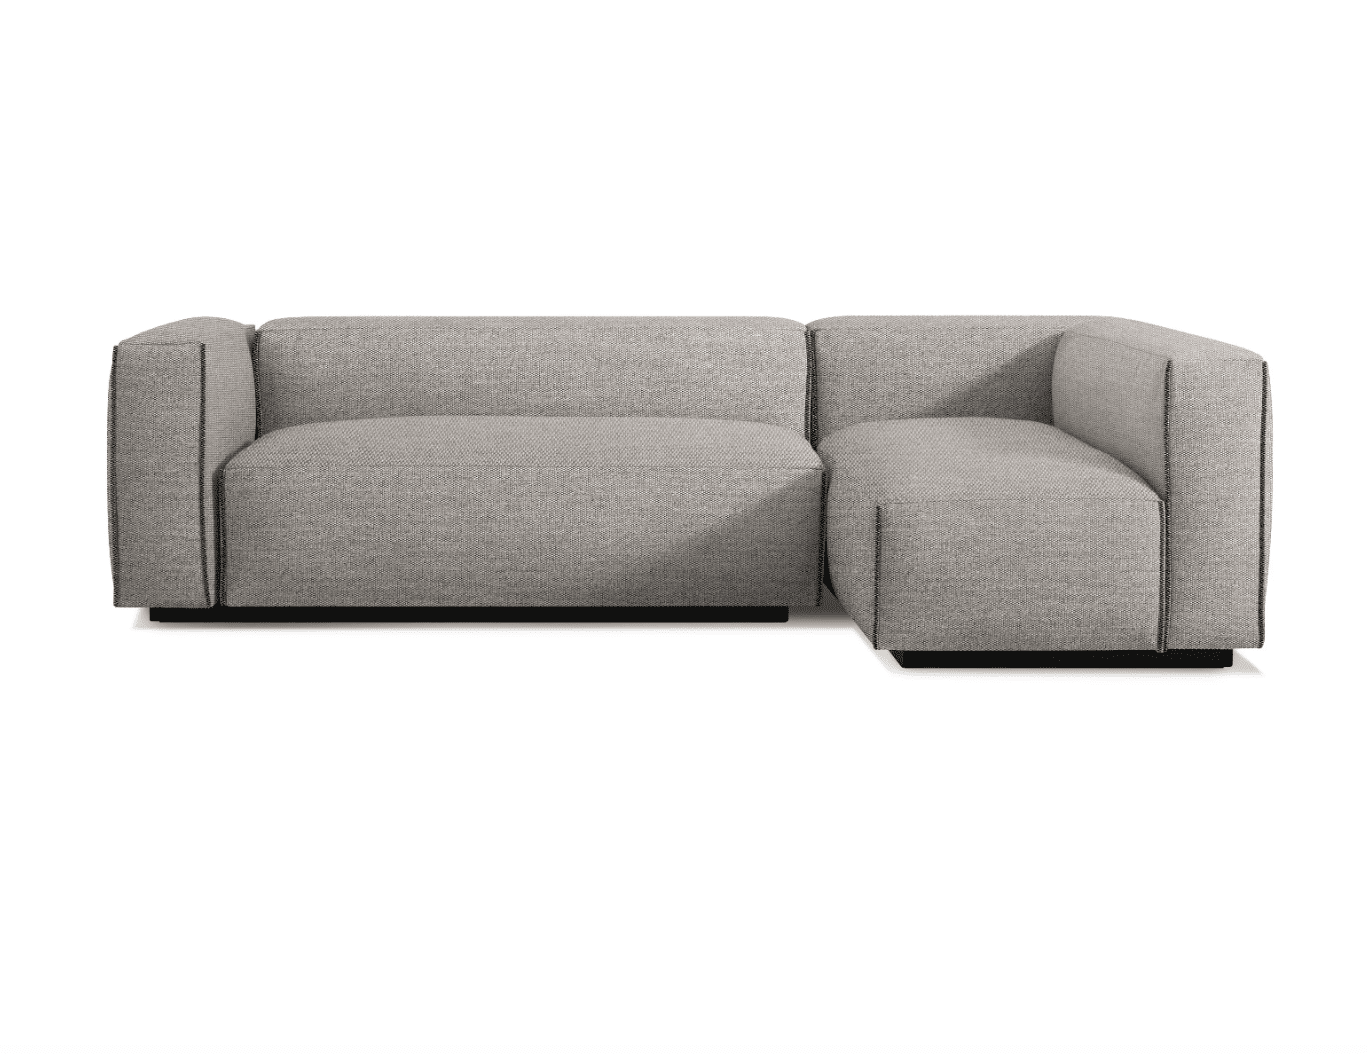 Cleon Small Sectional Sofa by Blu Dot in Tait Charcoal